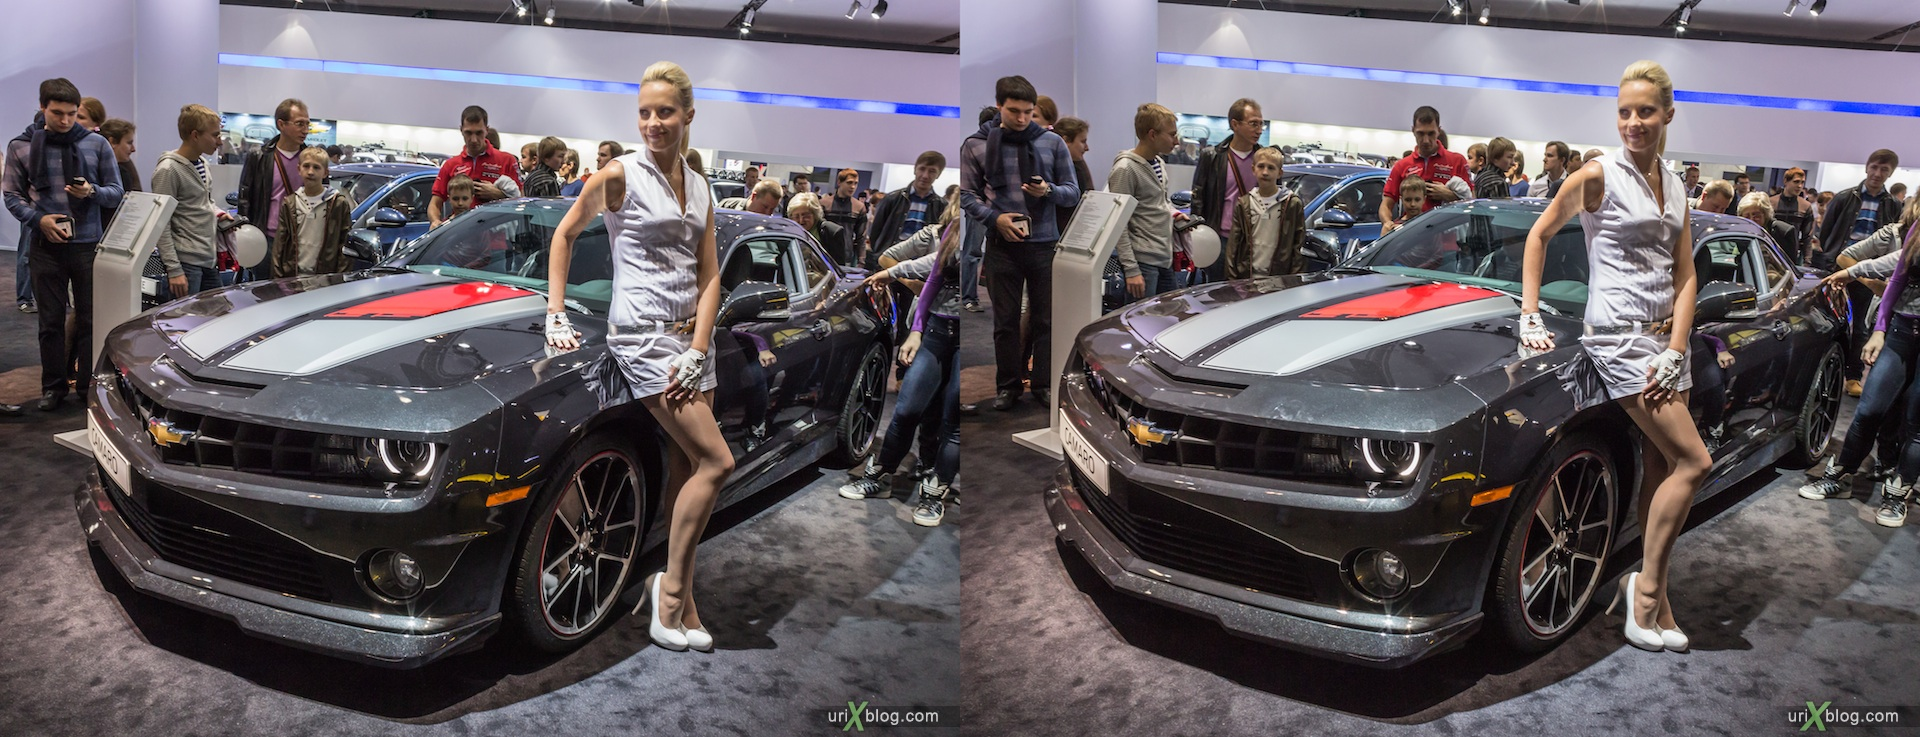 2012, Chevrolet Camaro, girl, model, Moscow International Automobile Salon, auto show, 3D, stereo pair, cross-eyed, crossview